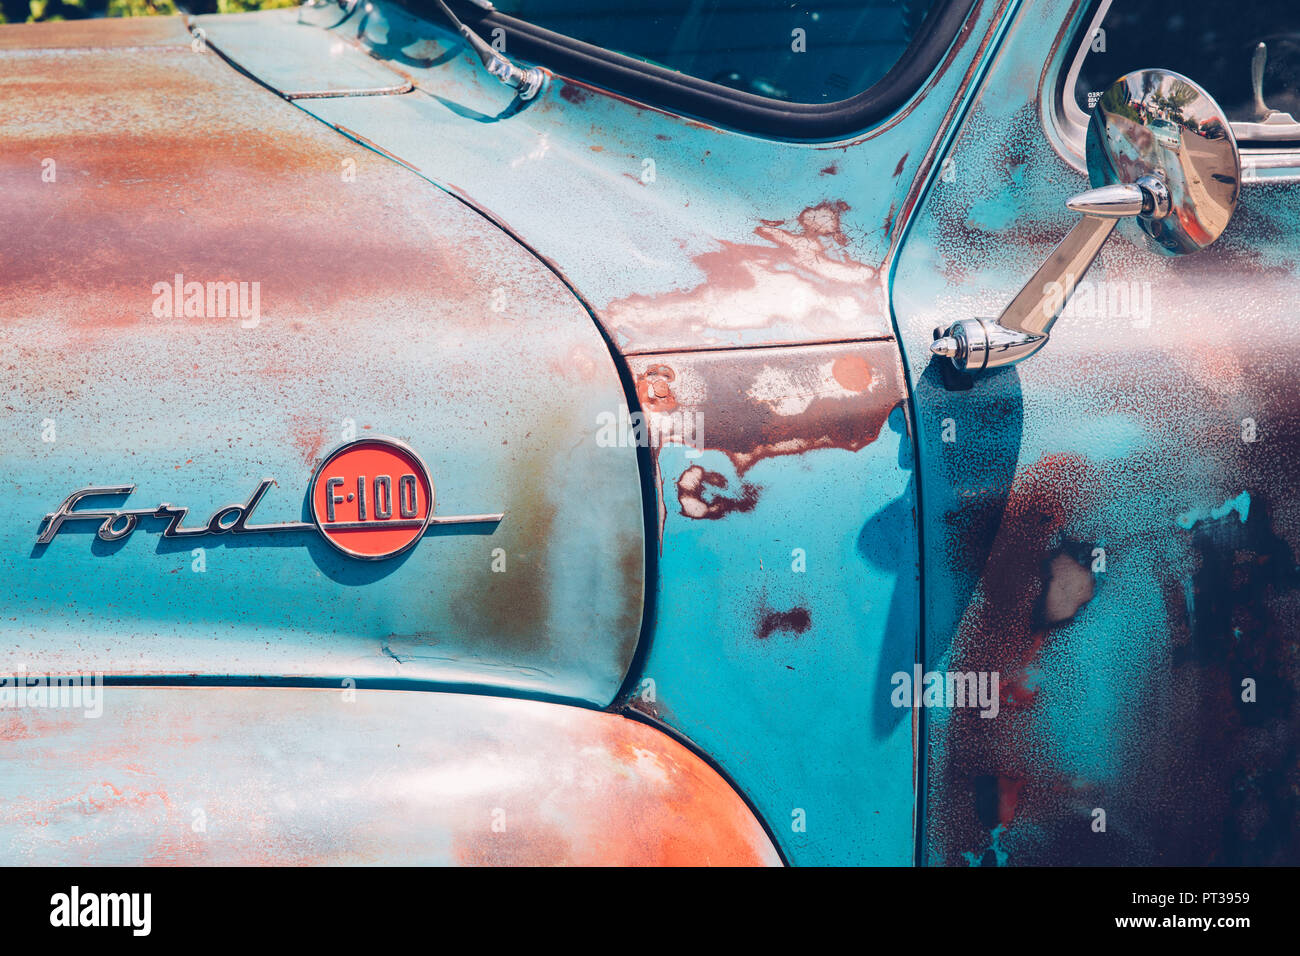 Ford F 100, US Car, Classic Car, Vintage Car, Detail, - Stock Image